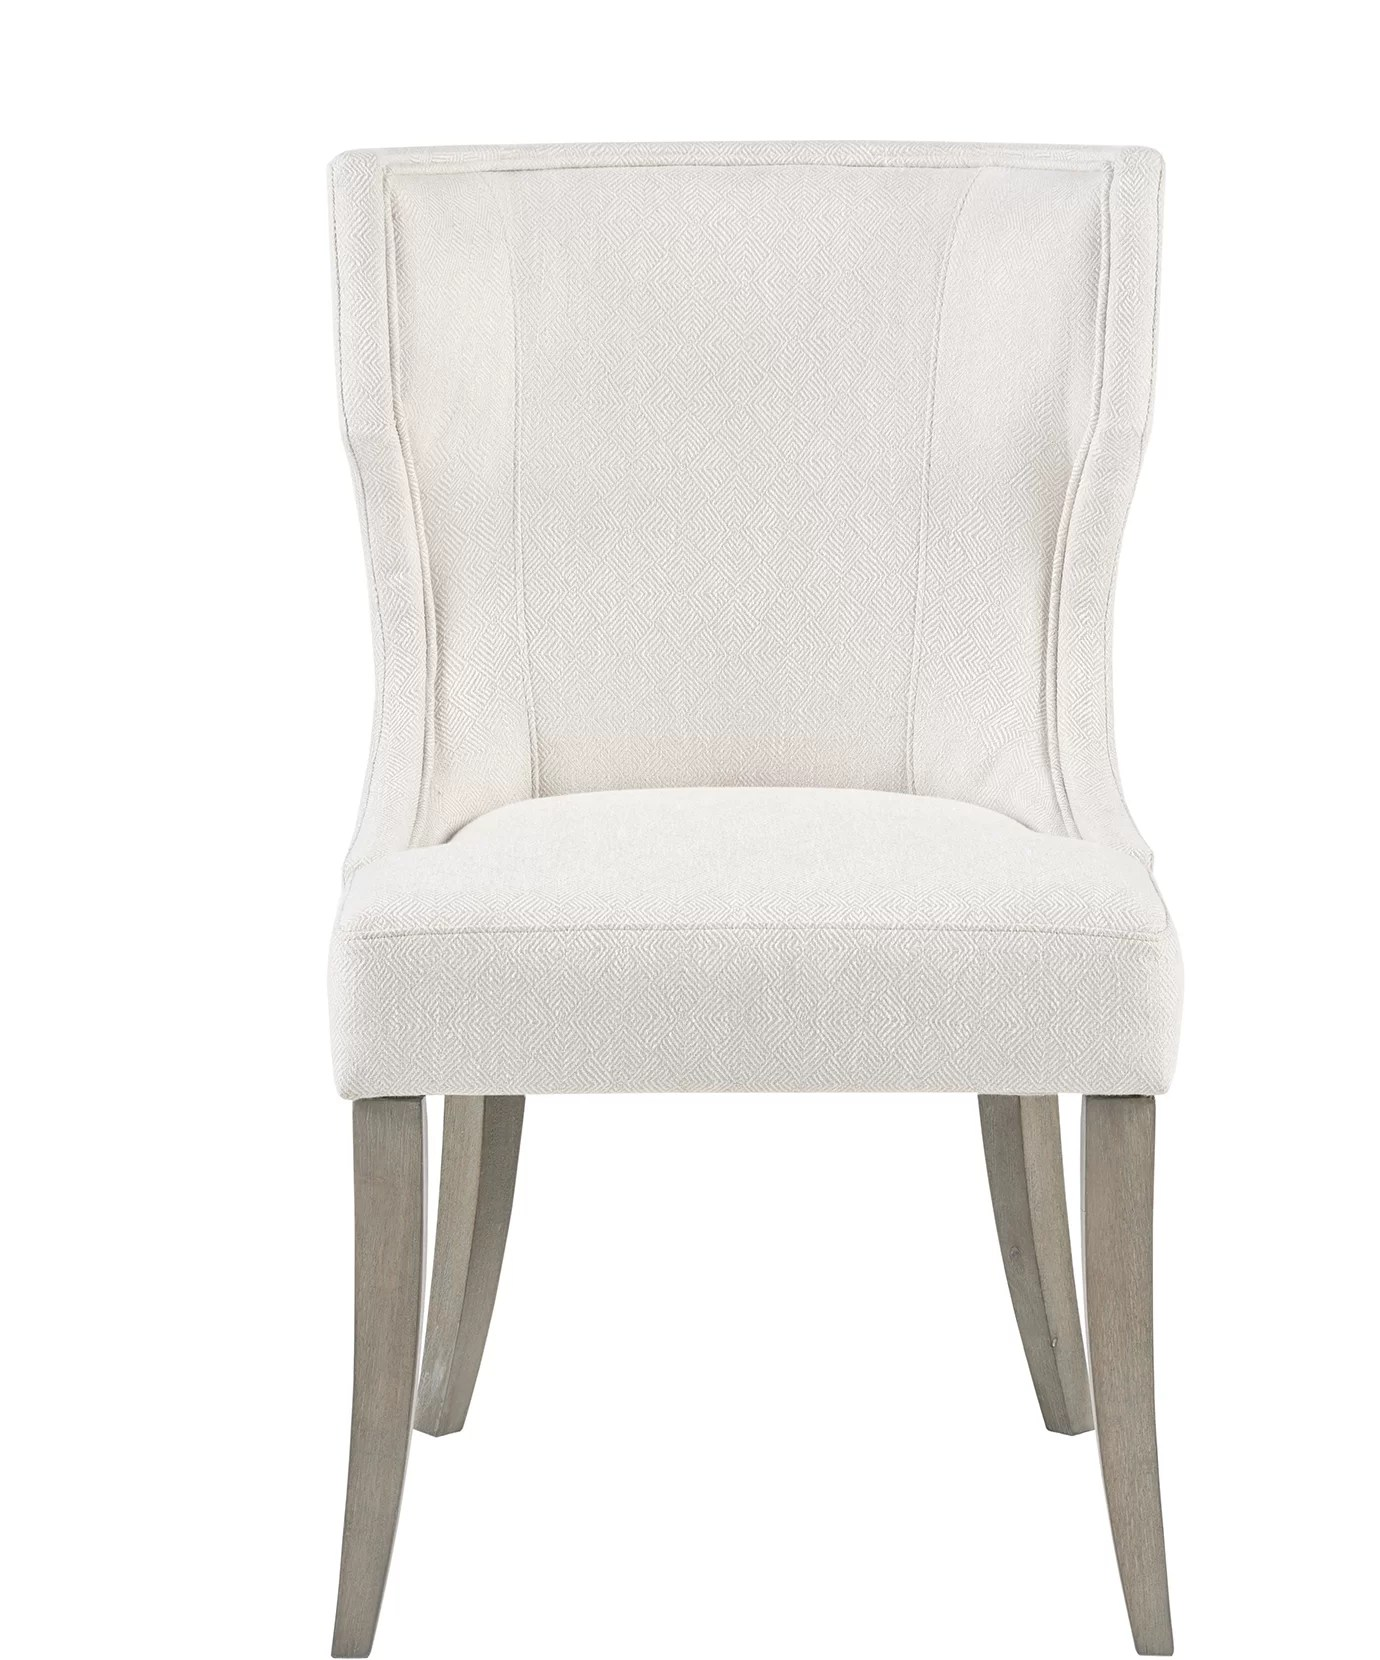 cream upholstered dining chairs stacking resin ophelia co laflamme chair wayfair